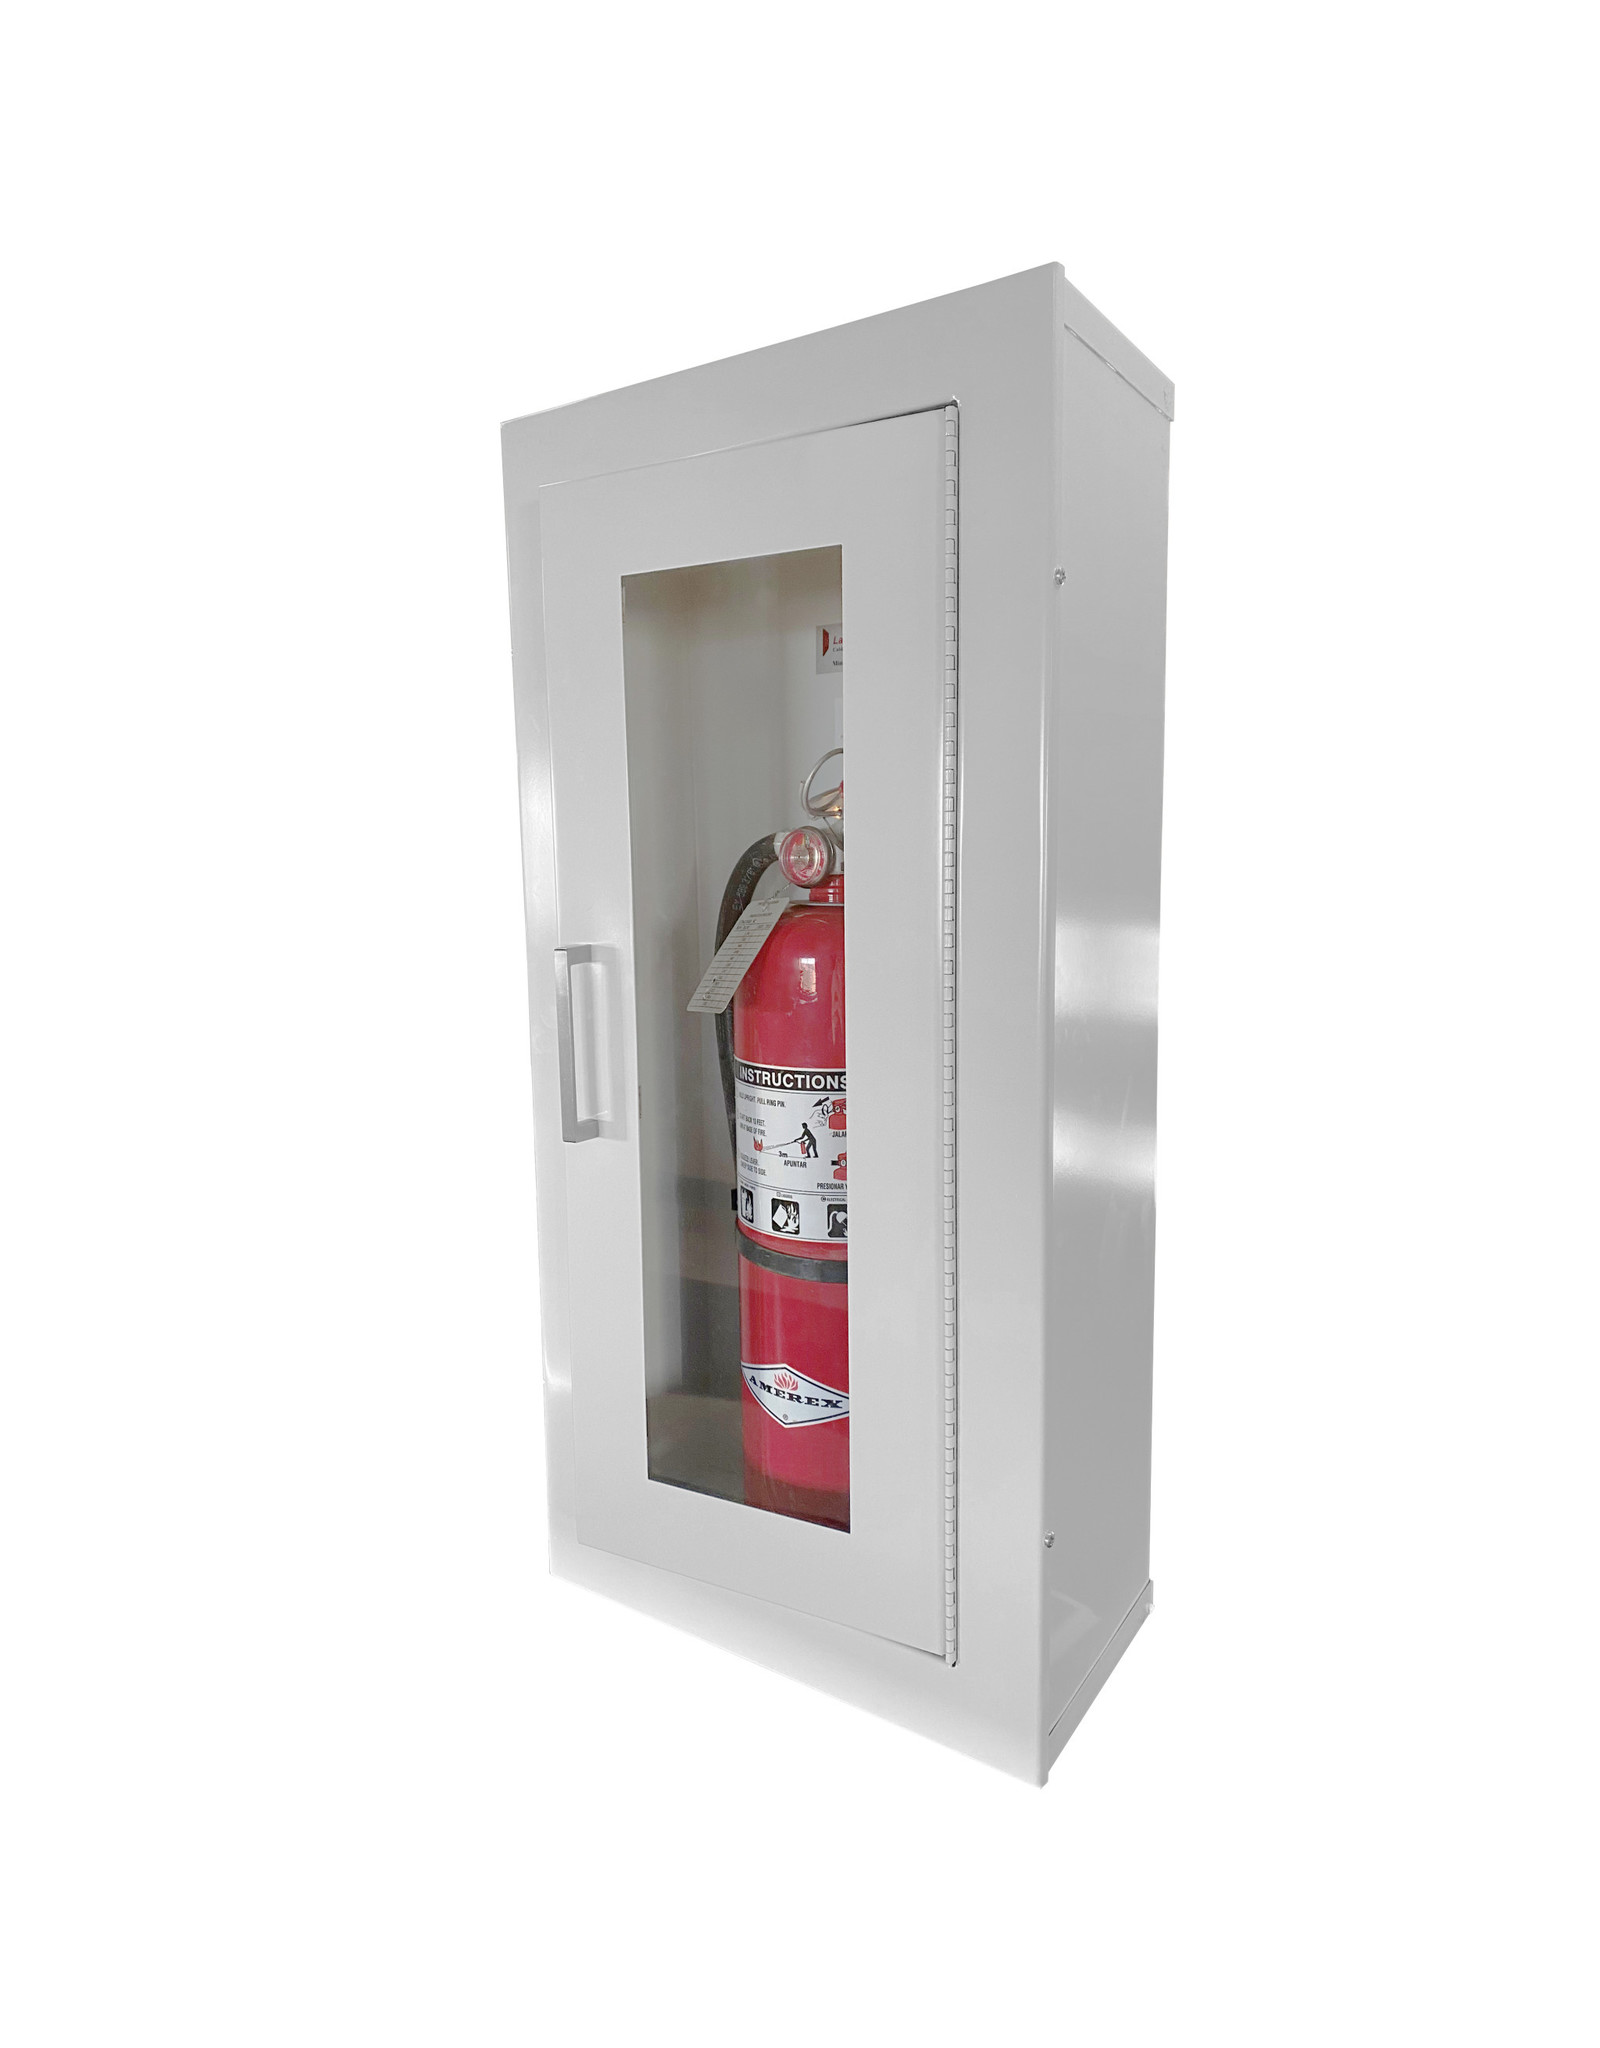 Larsen's Mfg 24 x 9.5 Inch Cabinet 10 Lbs ABC Fire Extinguisher - Steel Door and Frame, Surface Mount